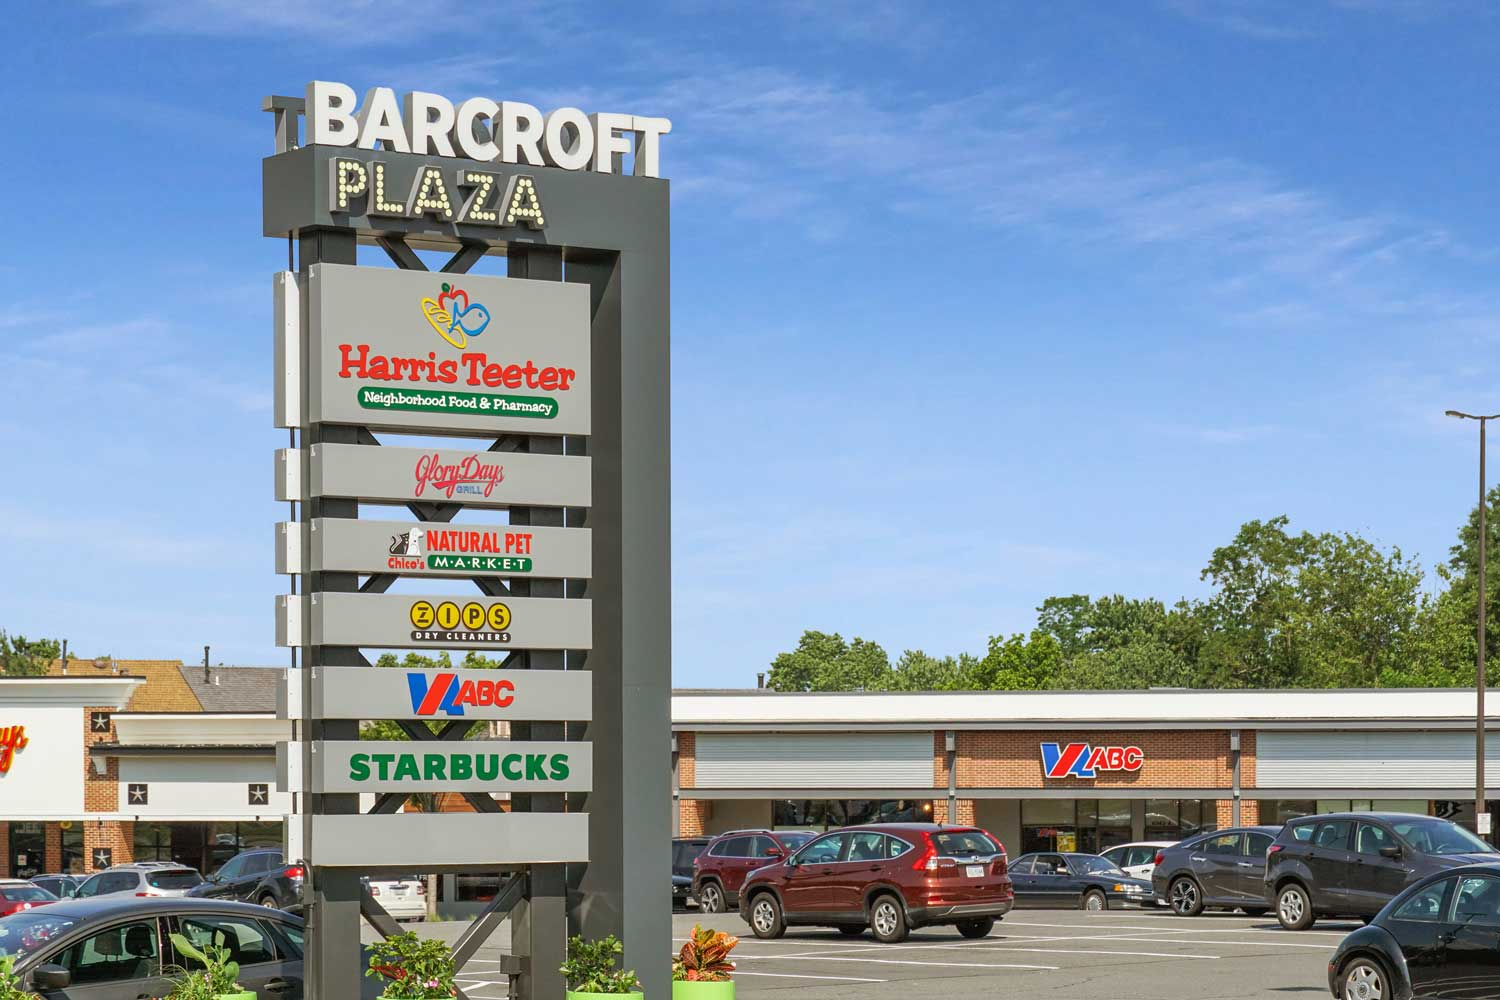 Barcroft Plaza shopping center 5 minutes from Barcroft Plaza Apartments in Falls Church, VA